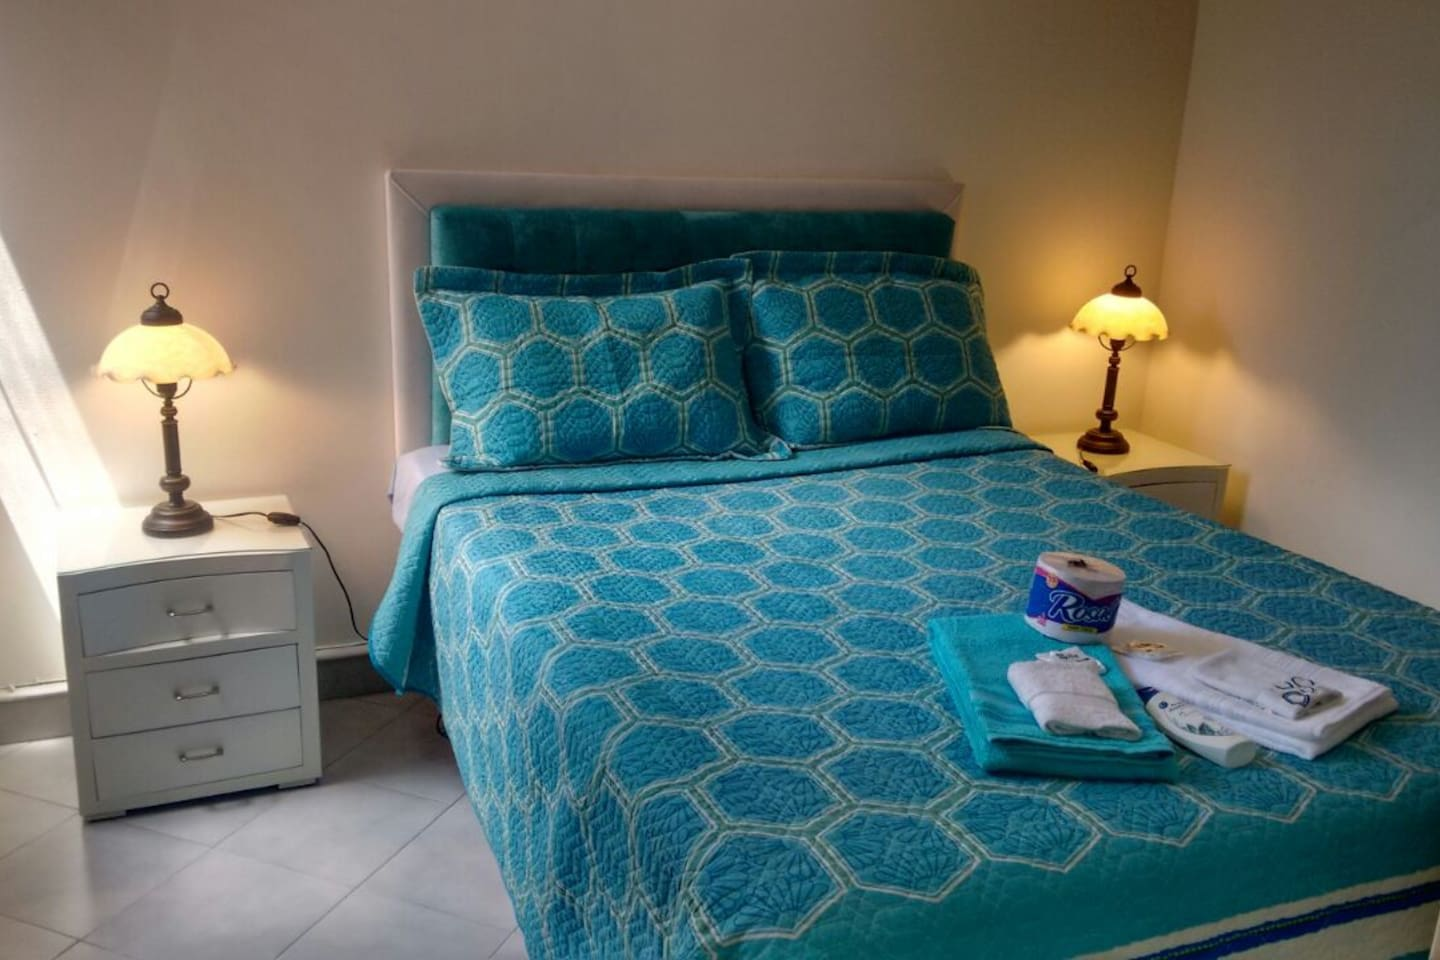 Master Room for rent with Private Bathroom, TV, Wifi and hot water.